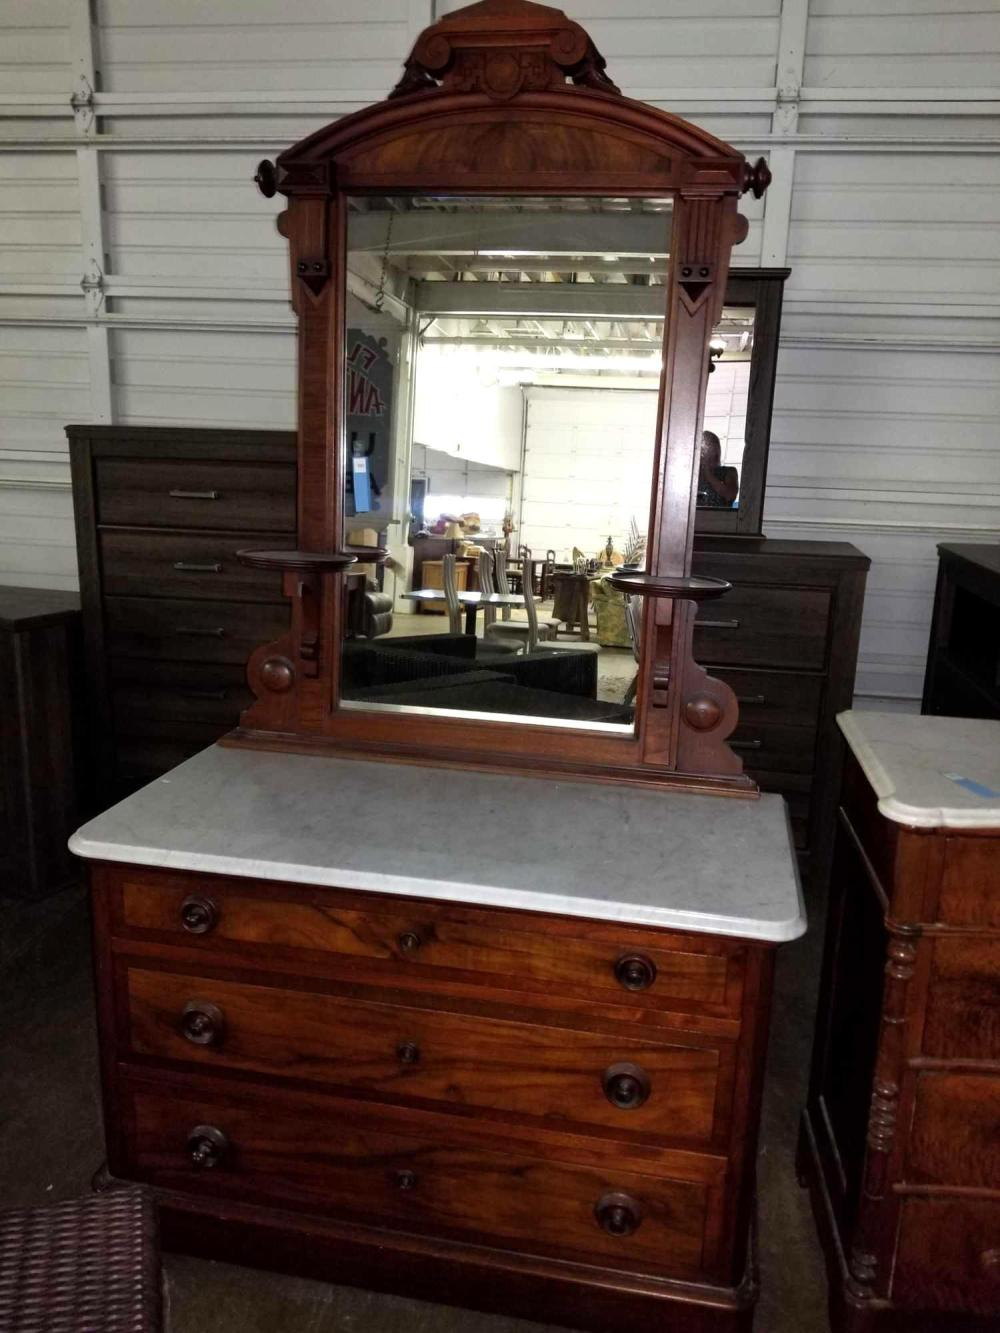 VICTORIAN WALNUT MARBLE TOPPED DRESSER W/ MIRROR & CANDLE STANDS